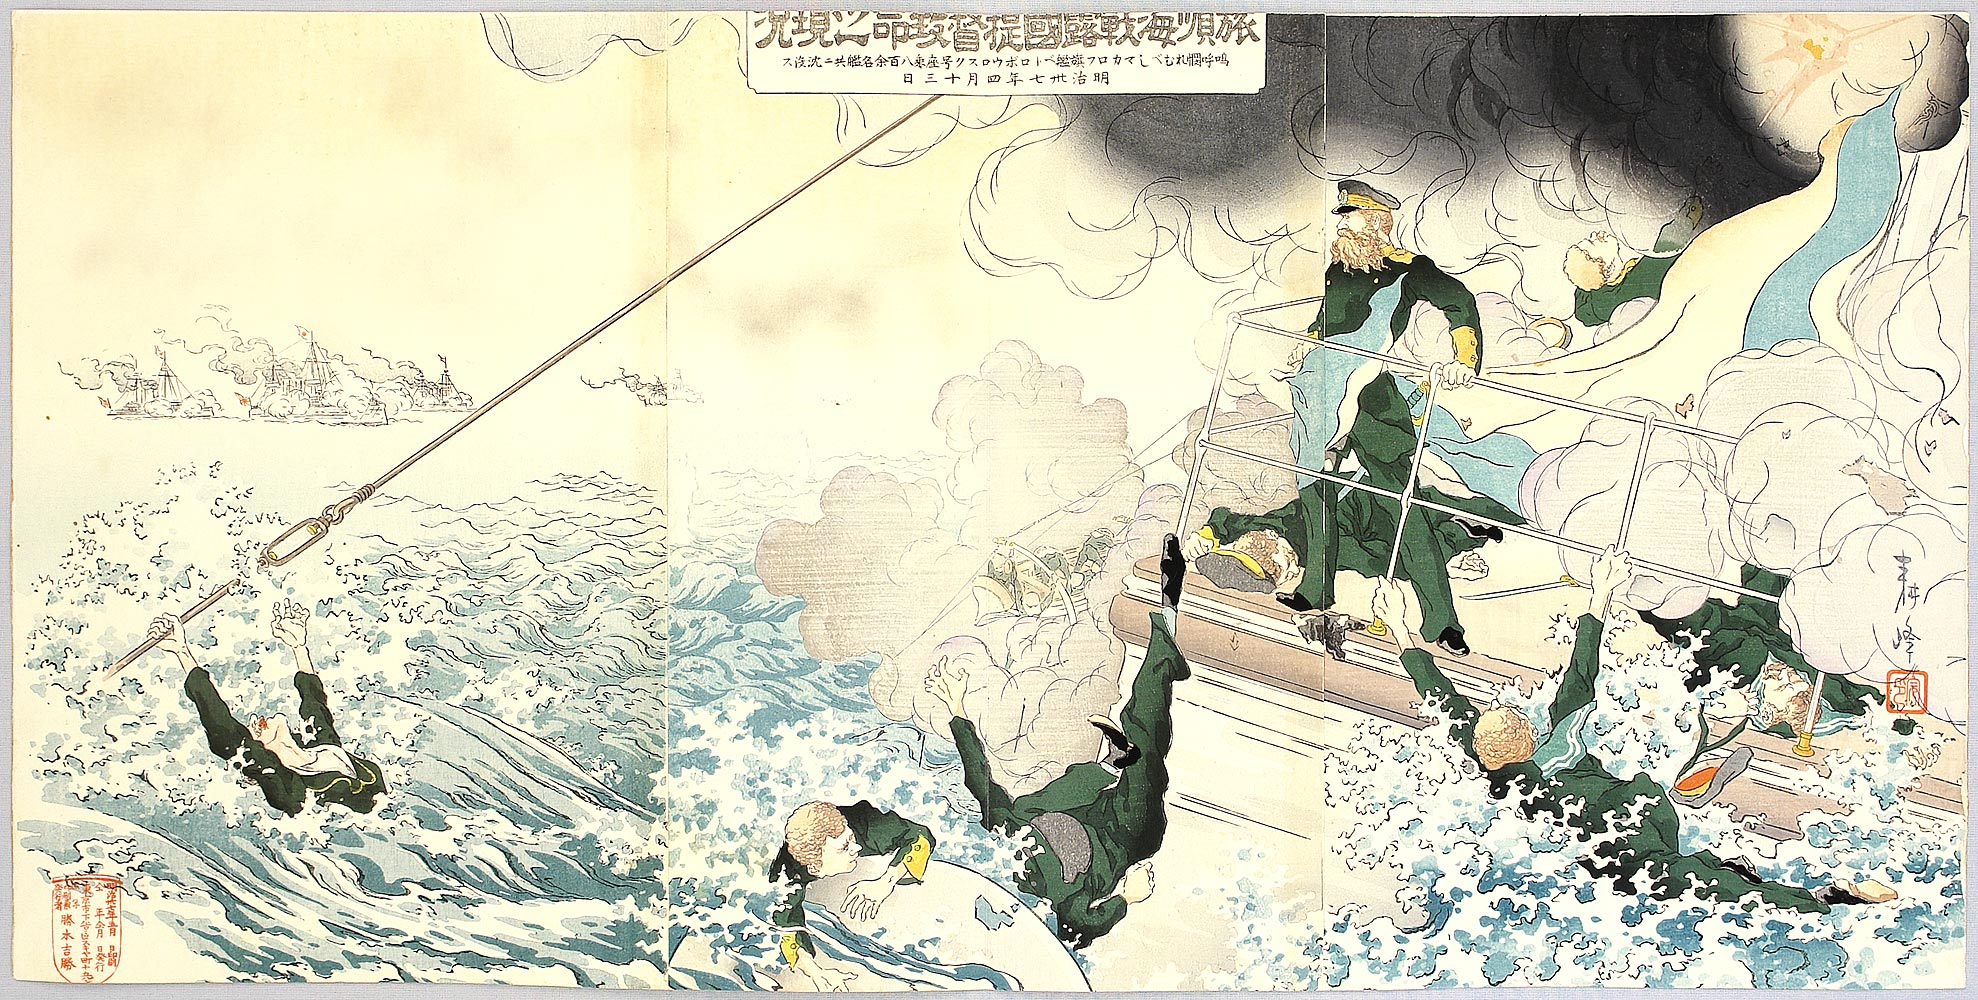 Koho: Sunk with His Ship - Russo-Japanese Naval War - Artelino - Ukiyo ...: https://ukiyo-e.org/image/artelino/27784g1